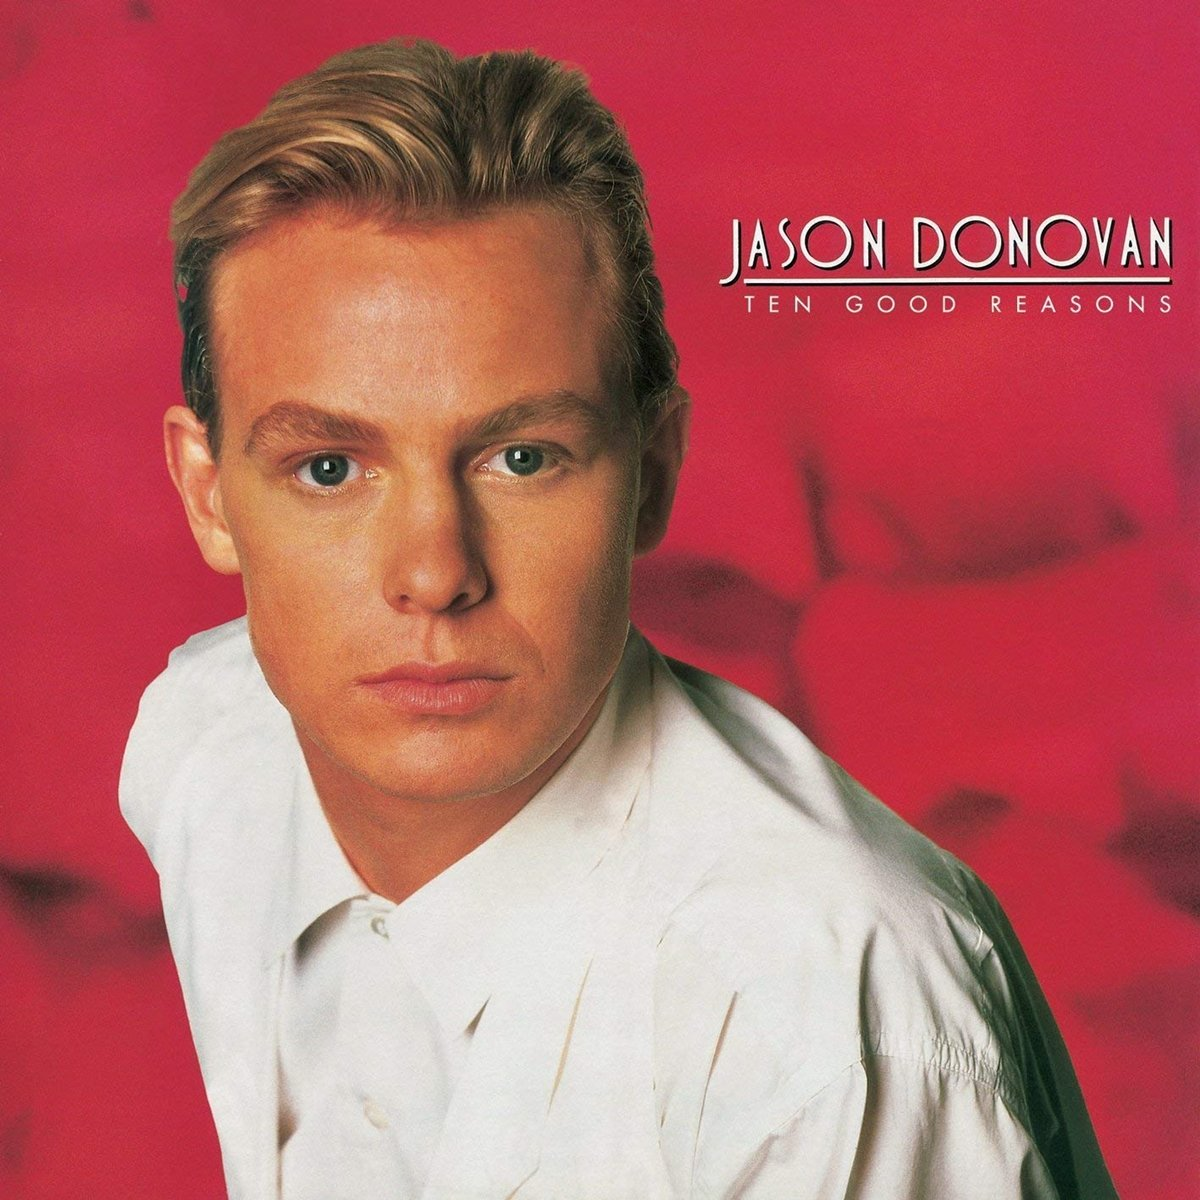 3 39 10 Things You Probably Didn't Know About Jason Donovan